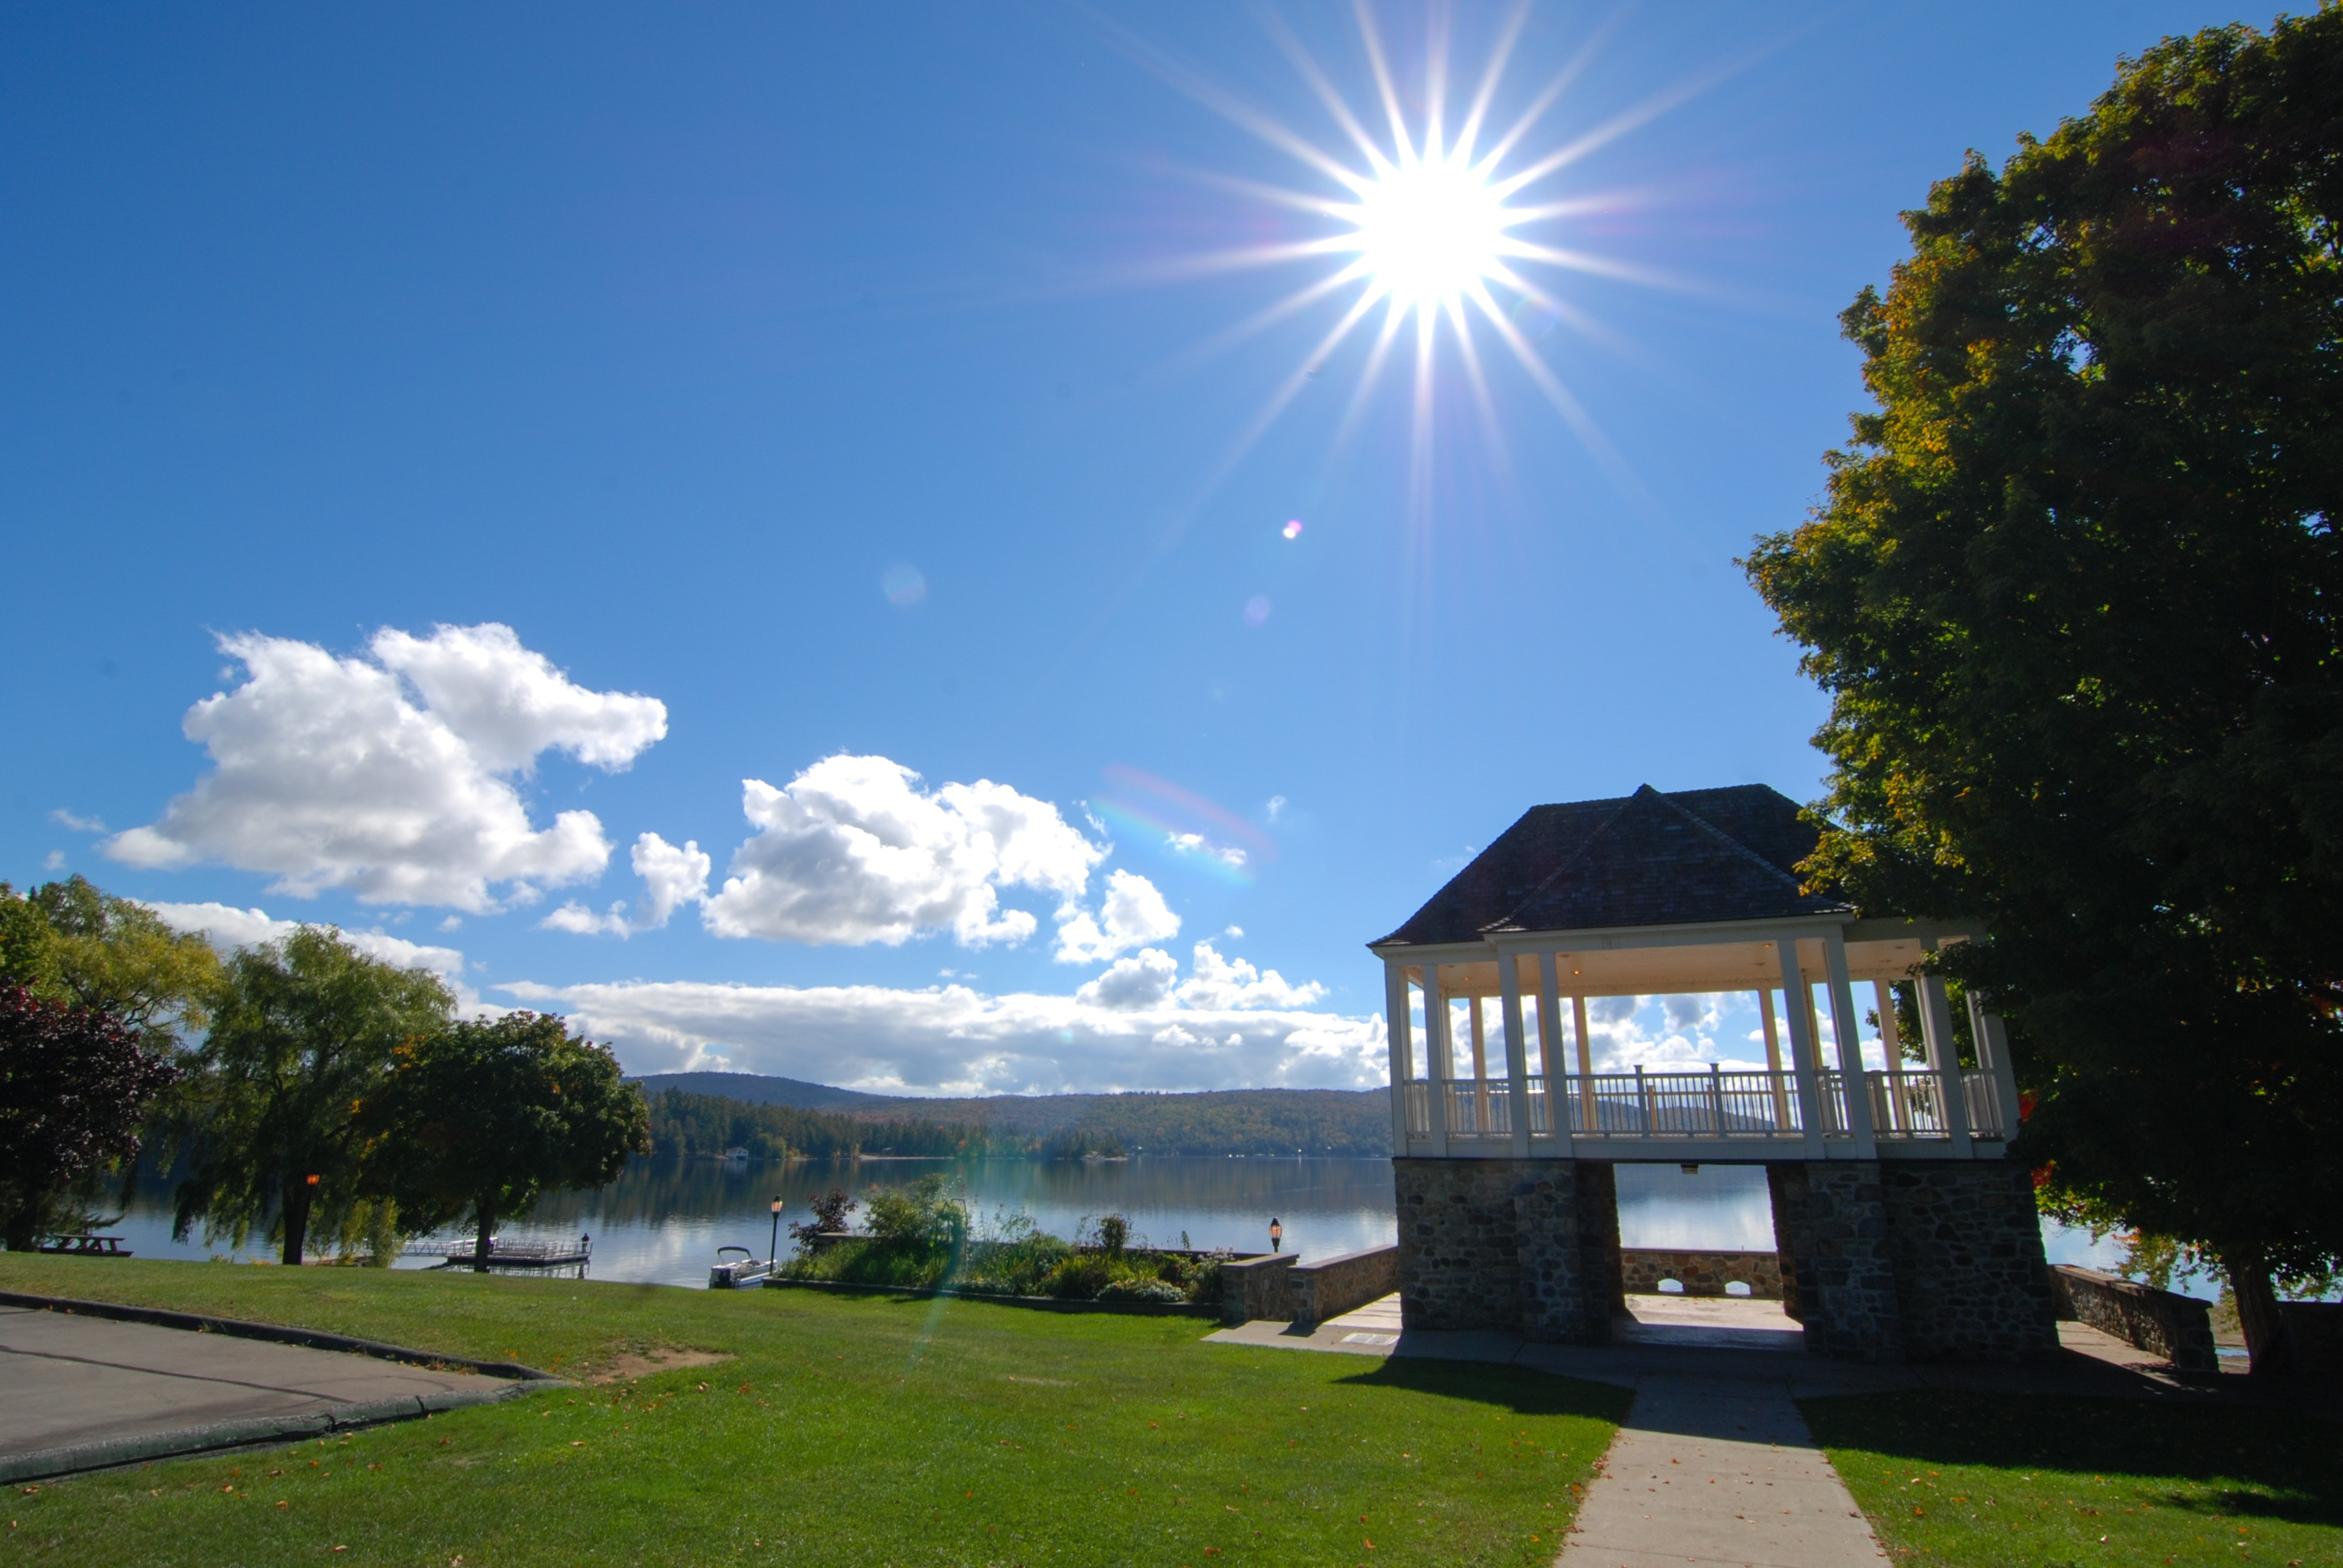 Schroon Lake Bandstand